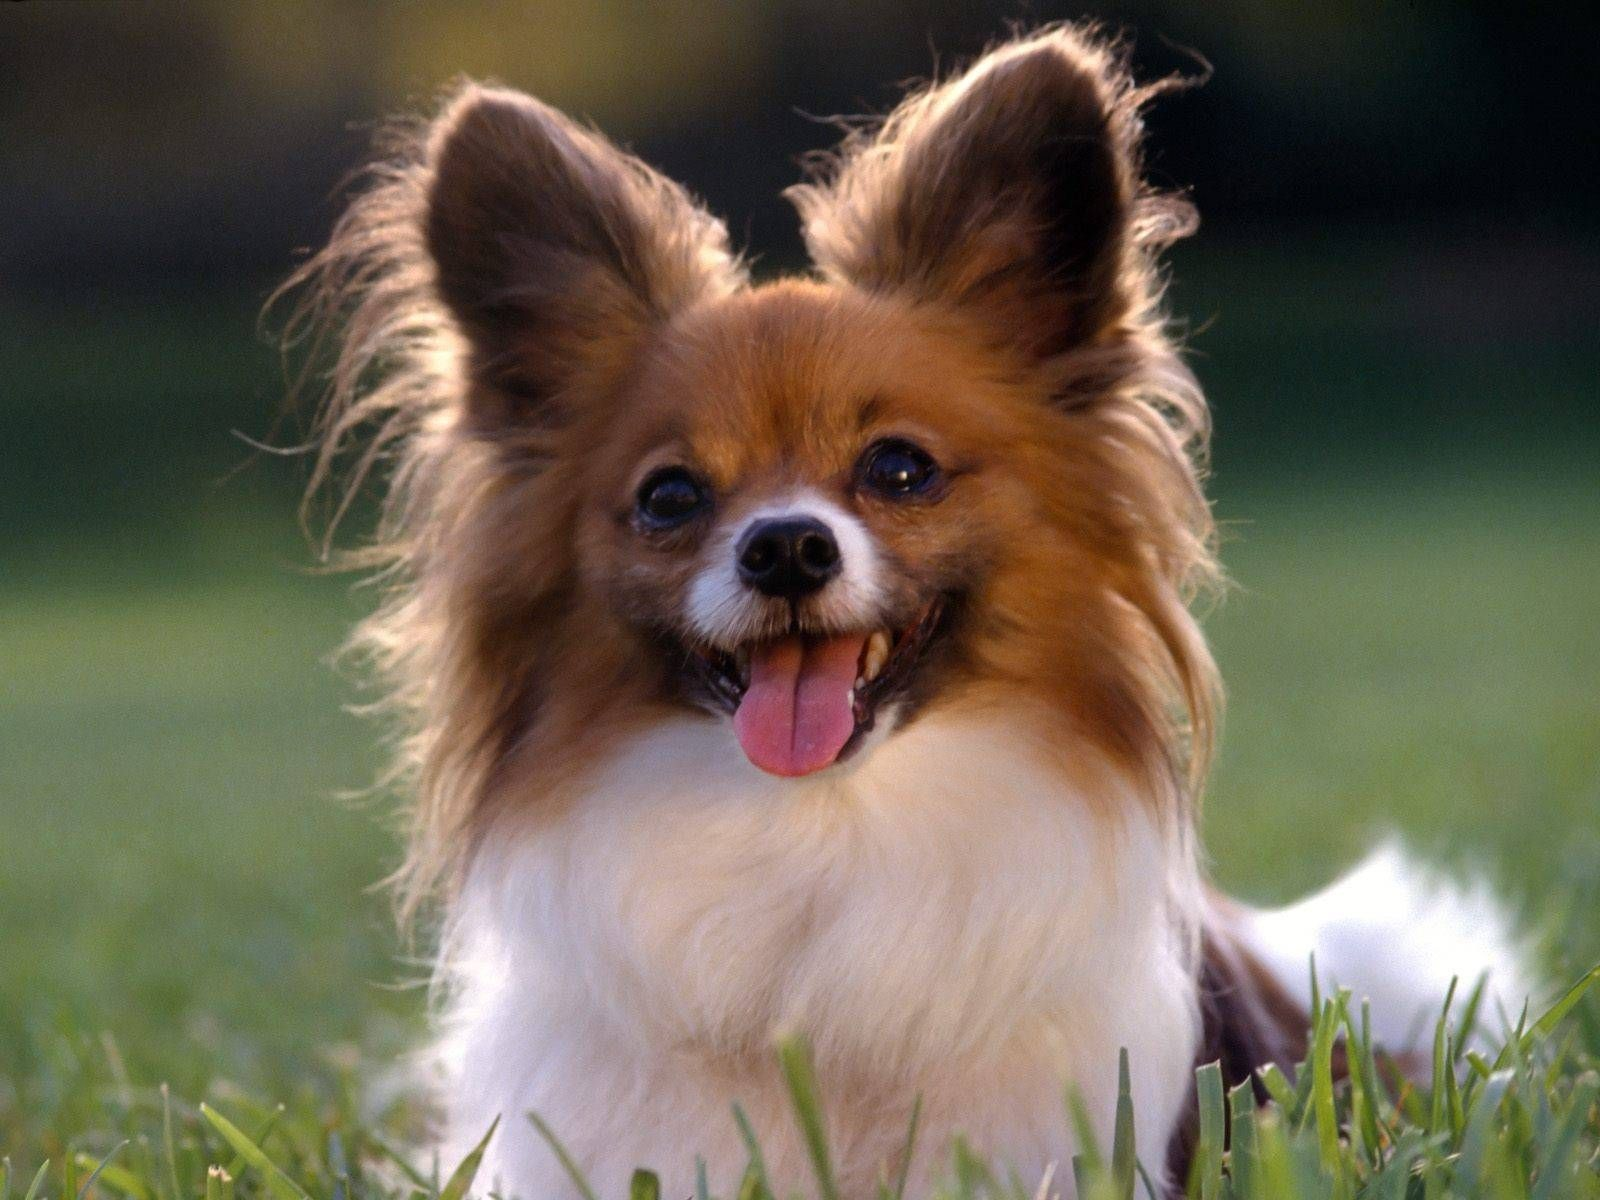 Long Haired Chihuahua Red White Dogs Wallpaper Papillon Dog Papillon Puppy Cutest Small Dog Breeds